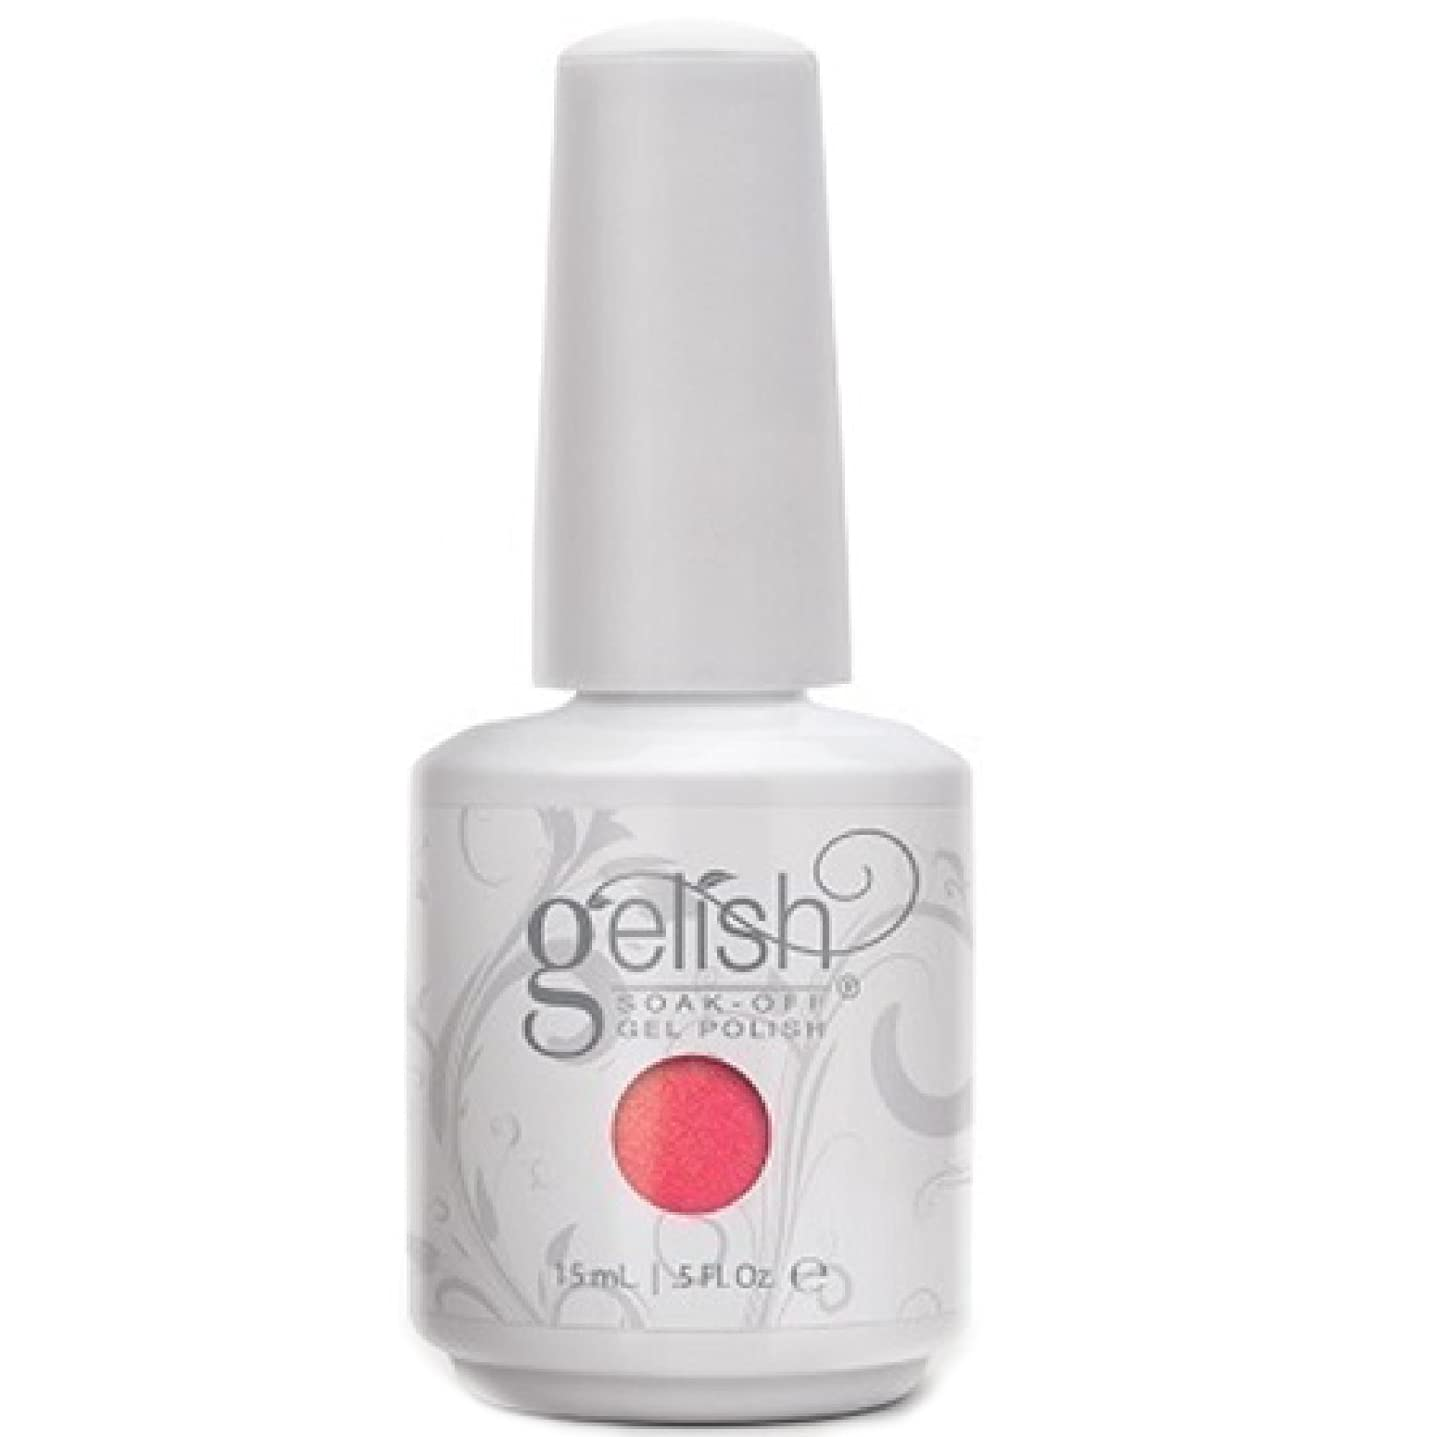 暴露情緒的変形Harmony Gelish Gel Polish - Hip Hot Coral - 0.5oz / 15ml